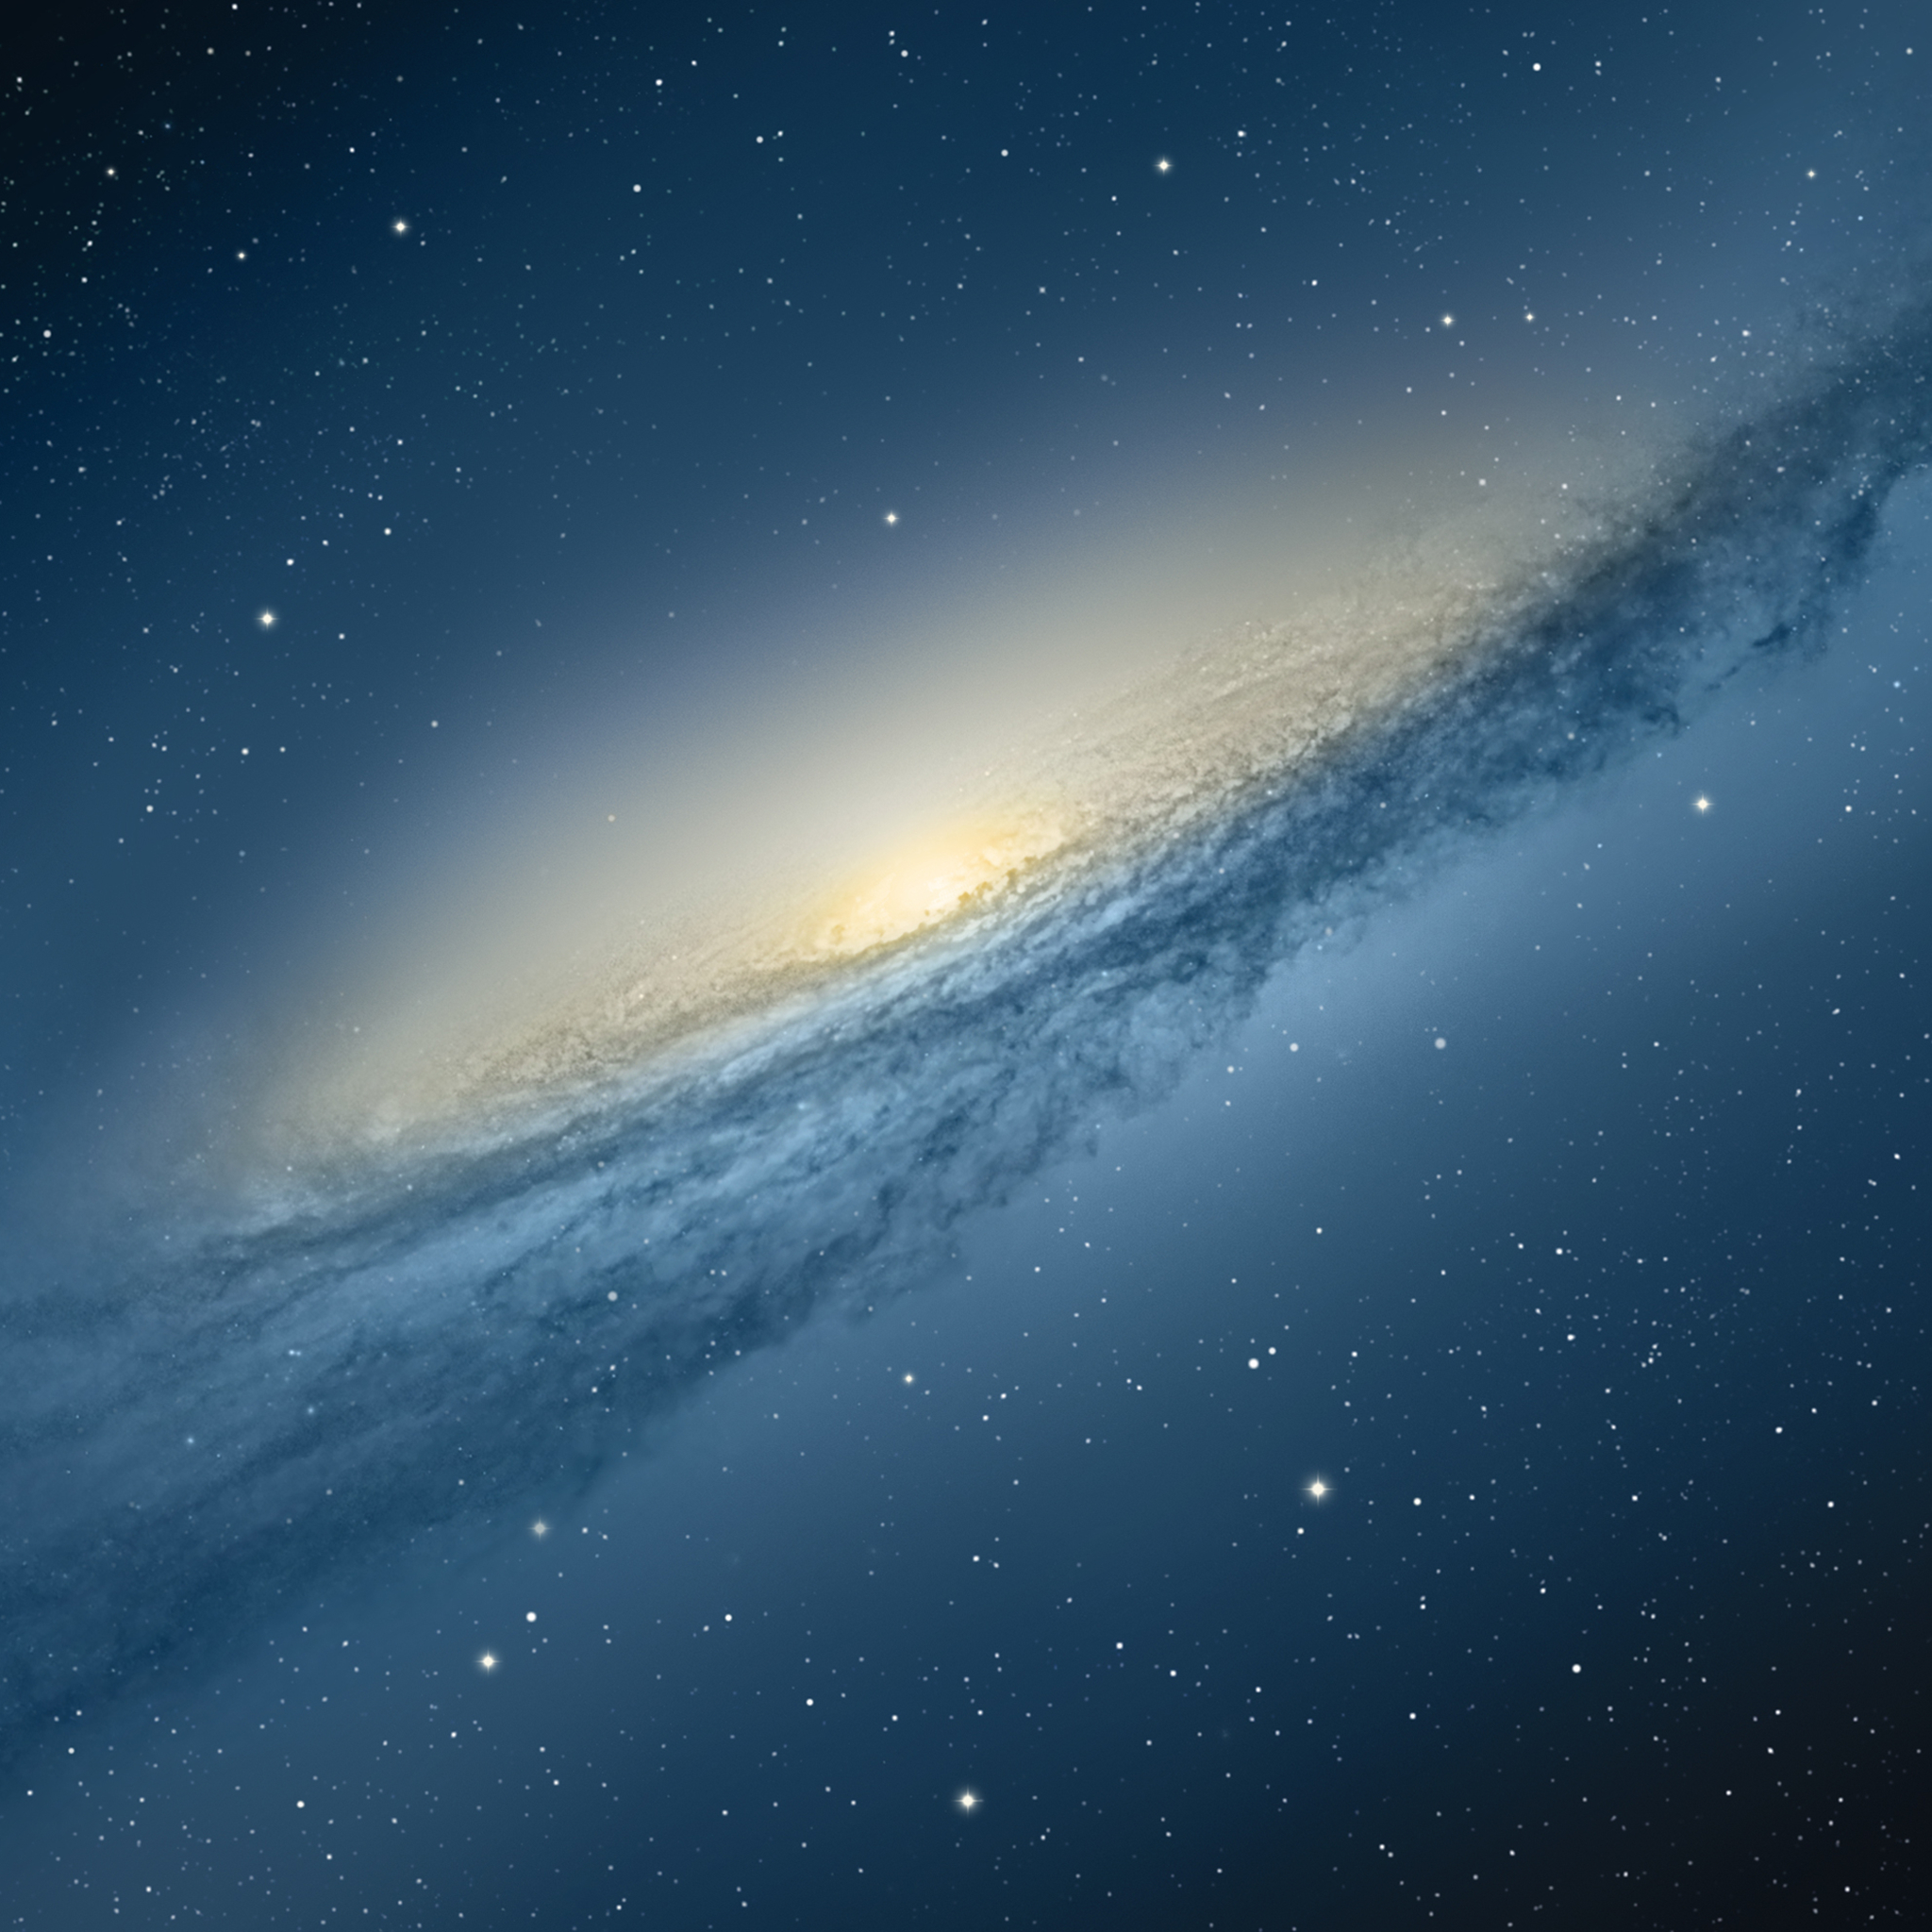 Mac OS X Galaxy Ipad wallpaper   5650   The Wondrous Pics 2048x2048